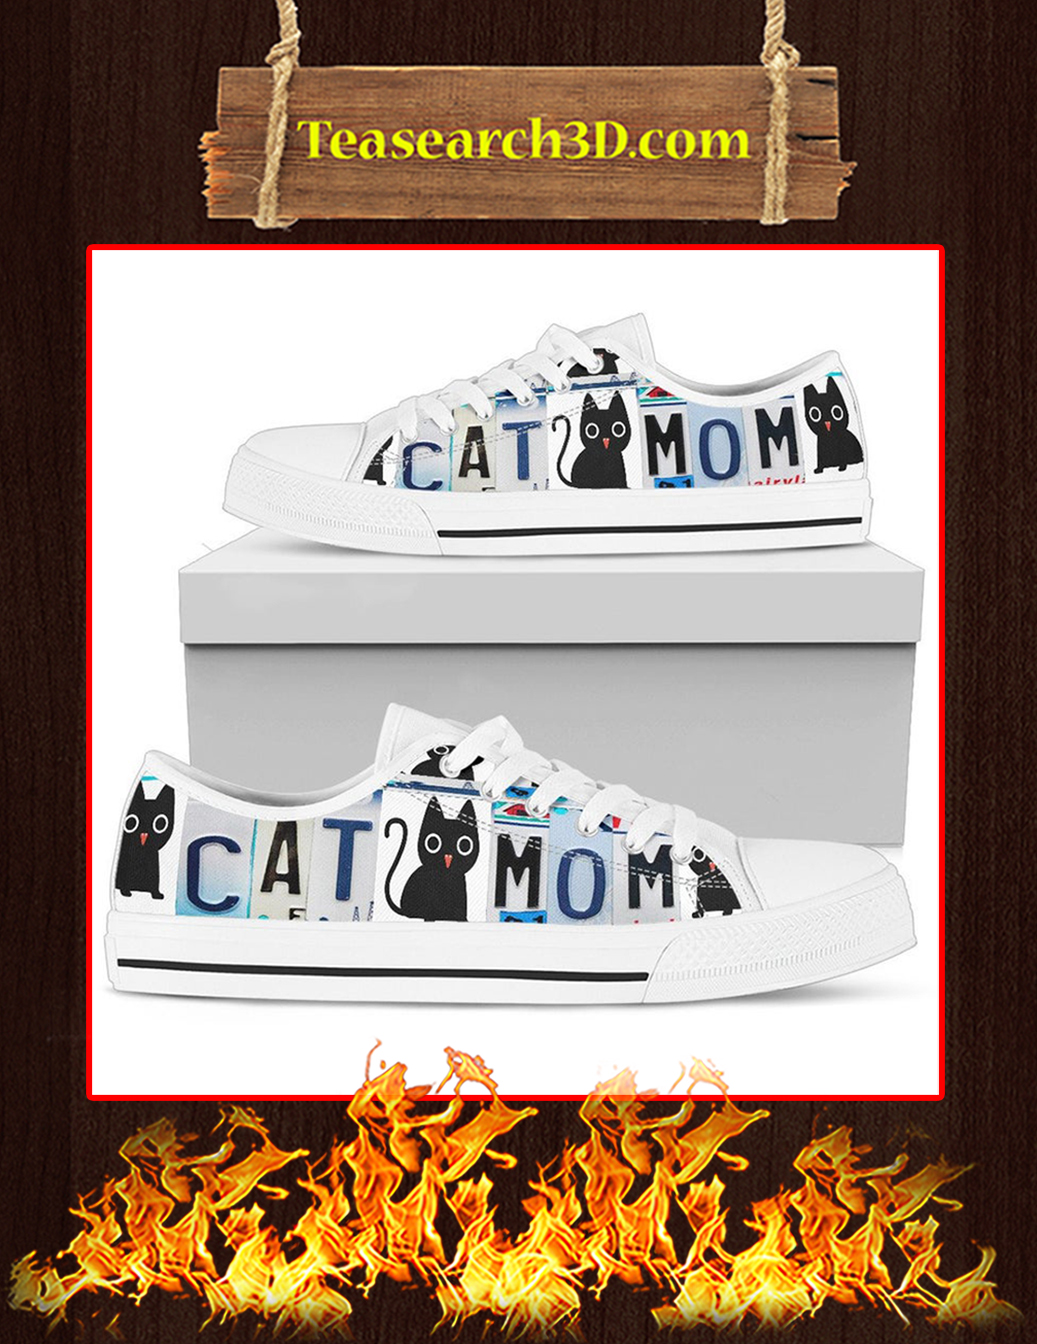 Cat Mom Low Top Shoes - Pic 1